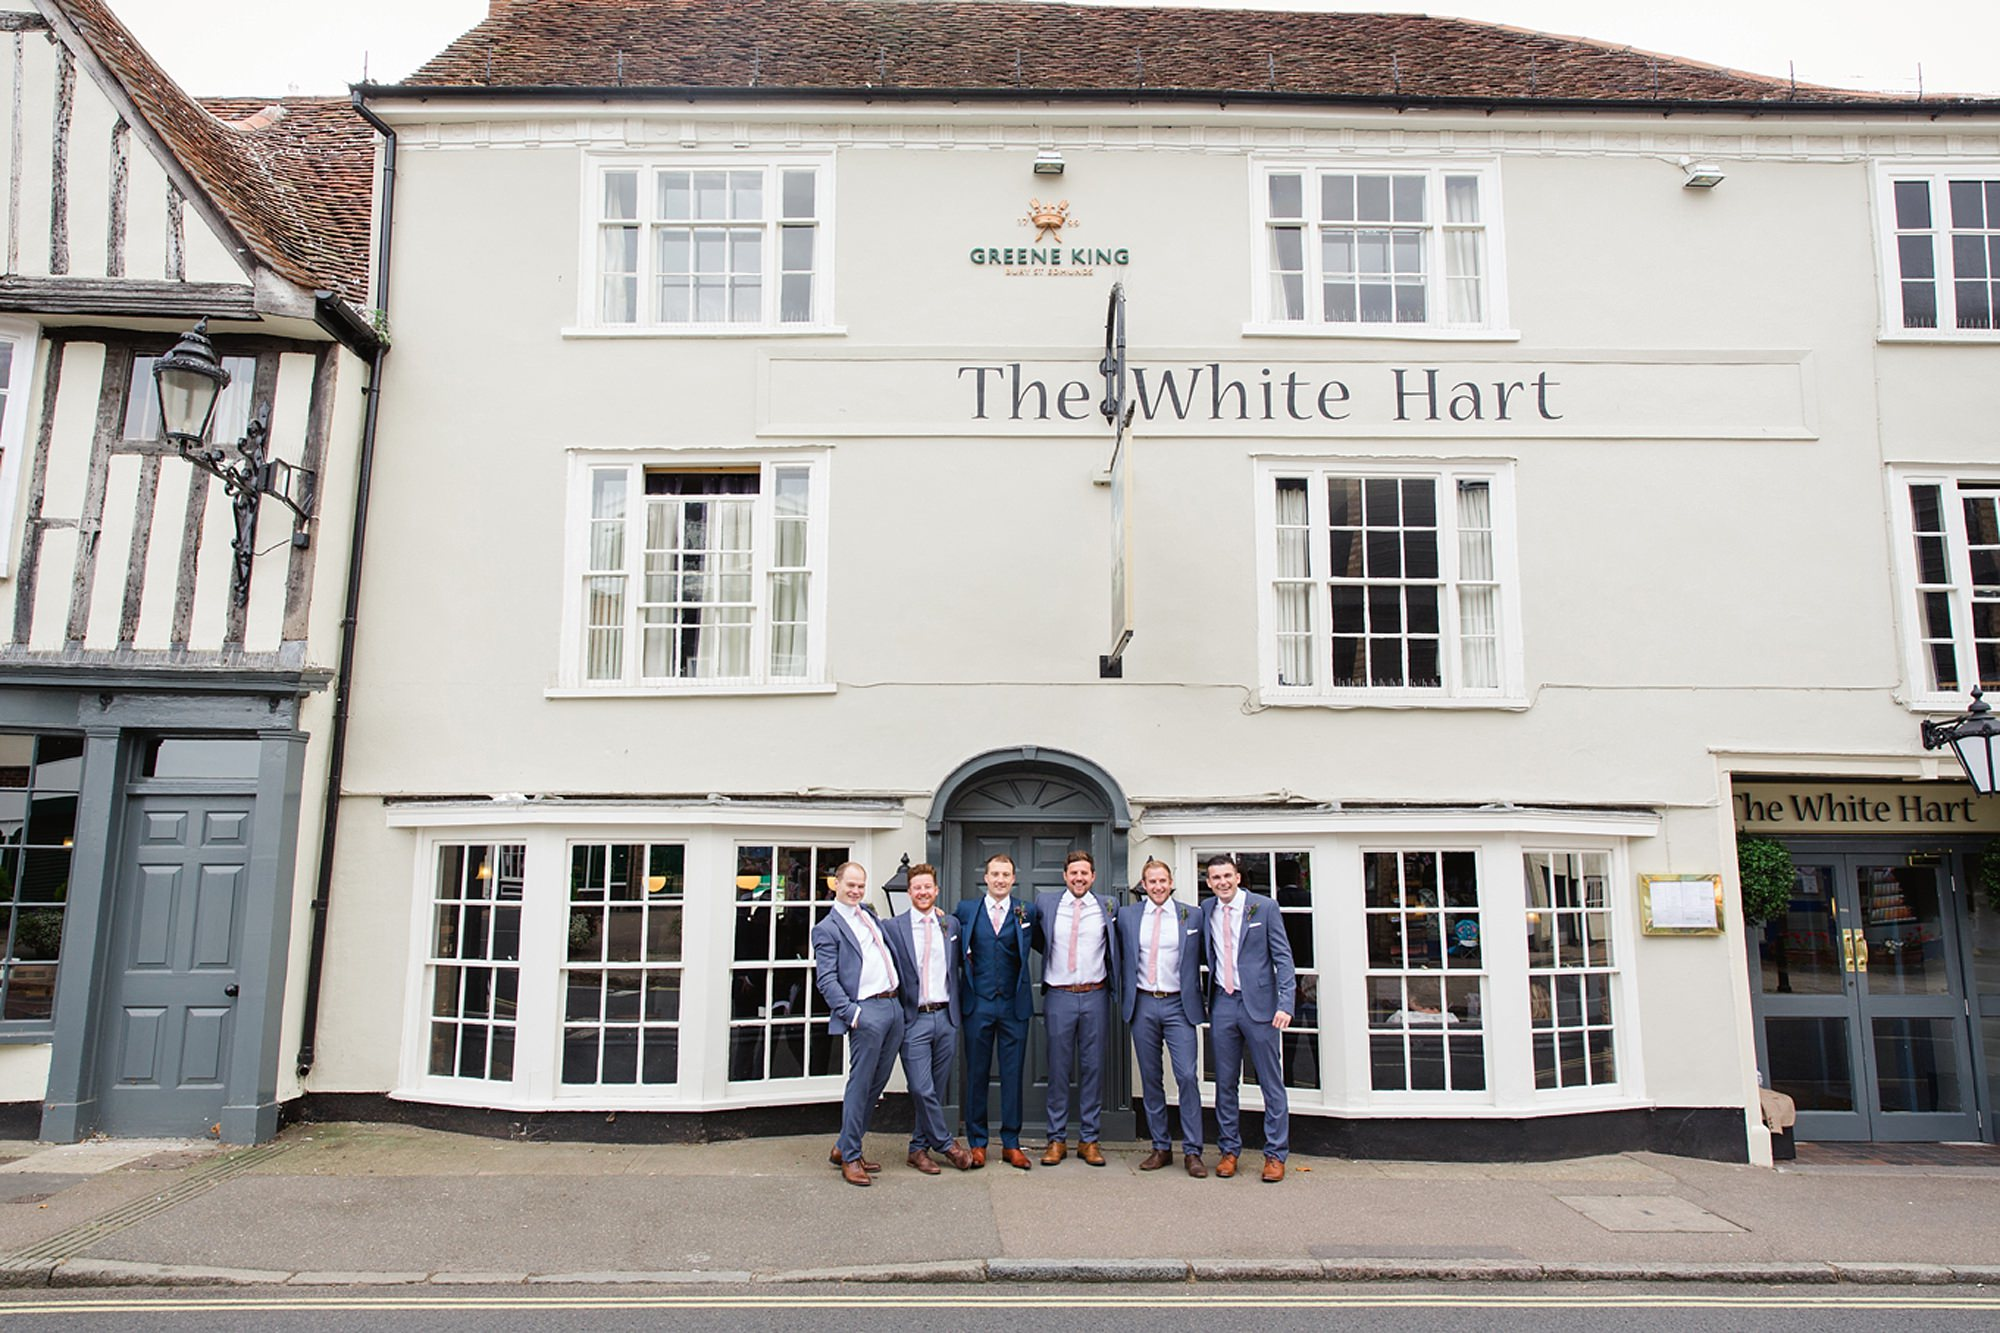 Marks Hall Estate wedding photography groom and groomsmen outside the pub